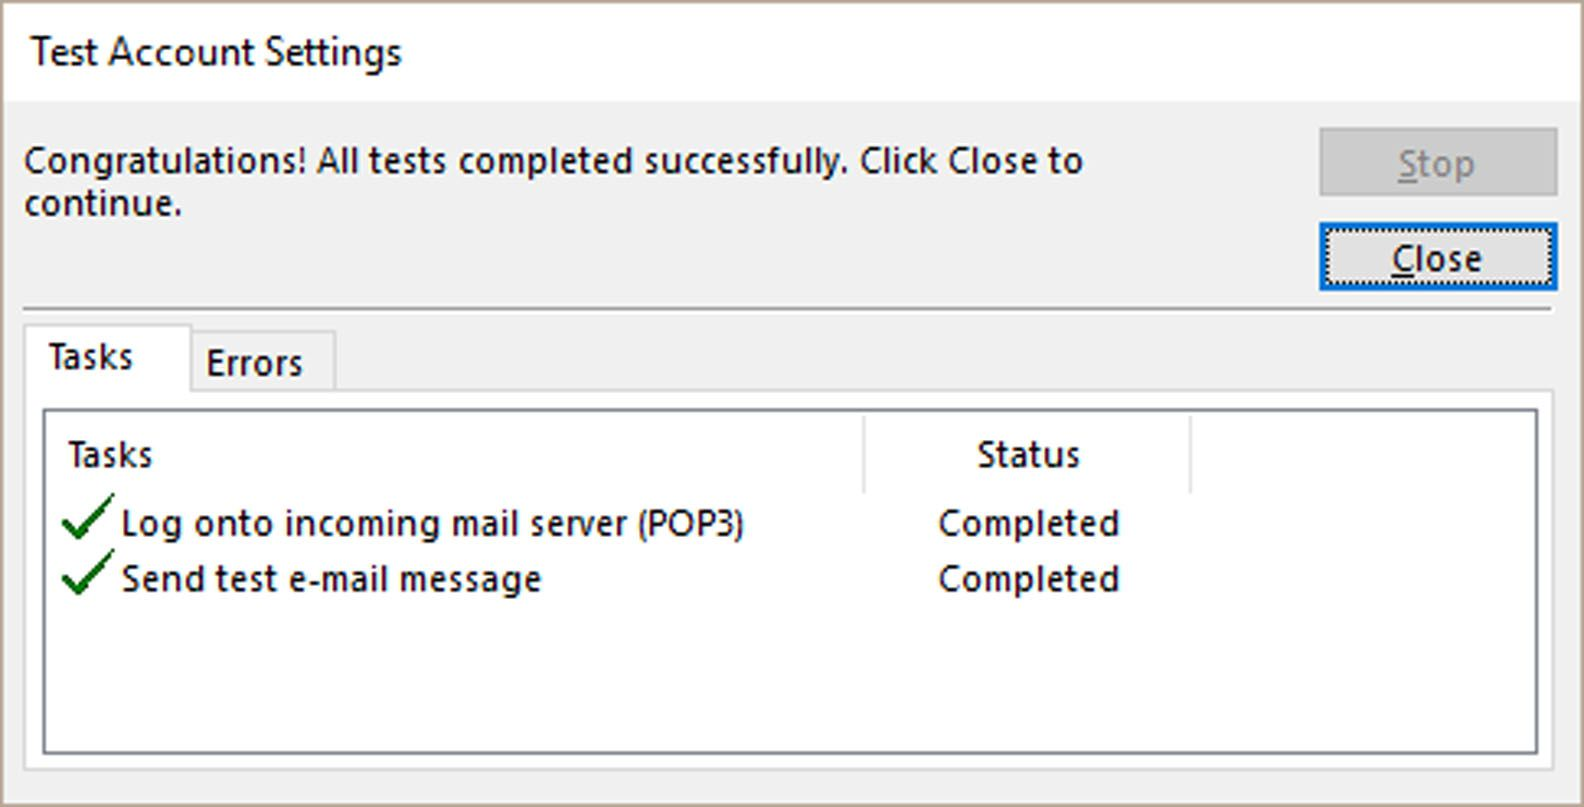 Outlook with Test Account Settings dialog box displayed